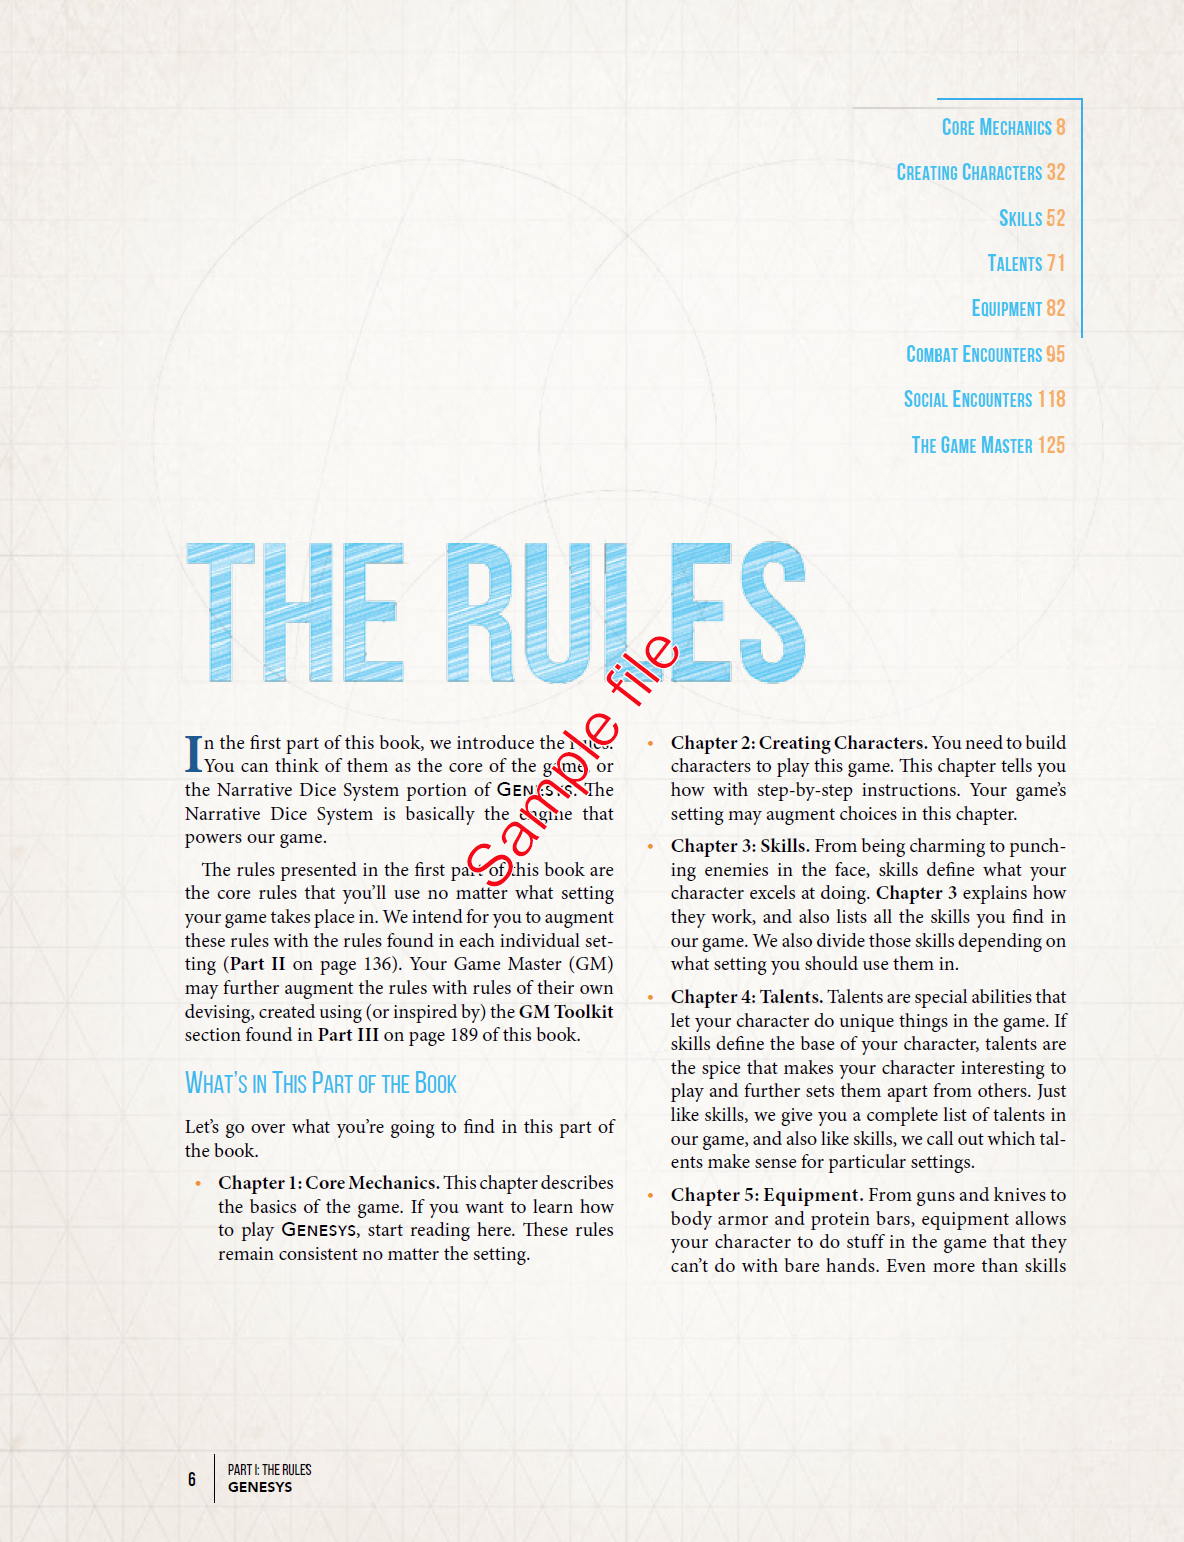 Section-Specific Table of Contents and Navigation | denagh design